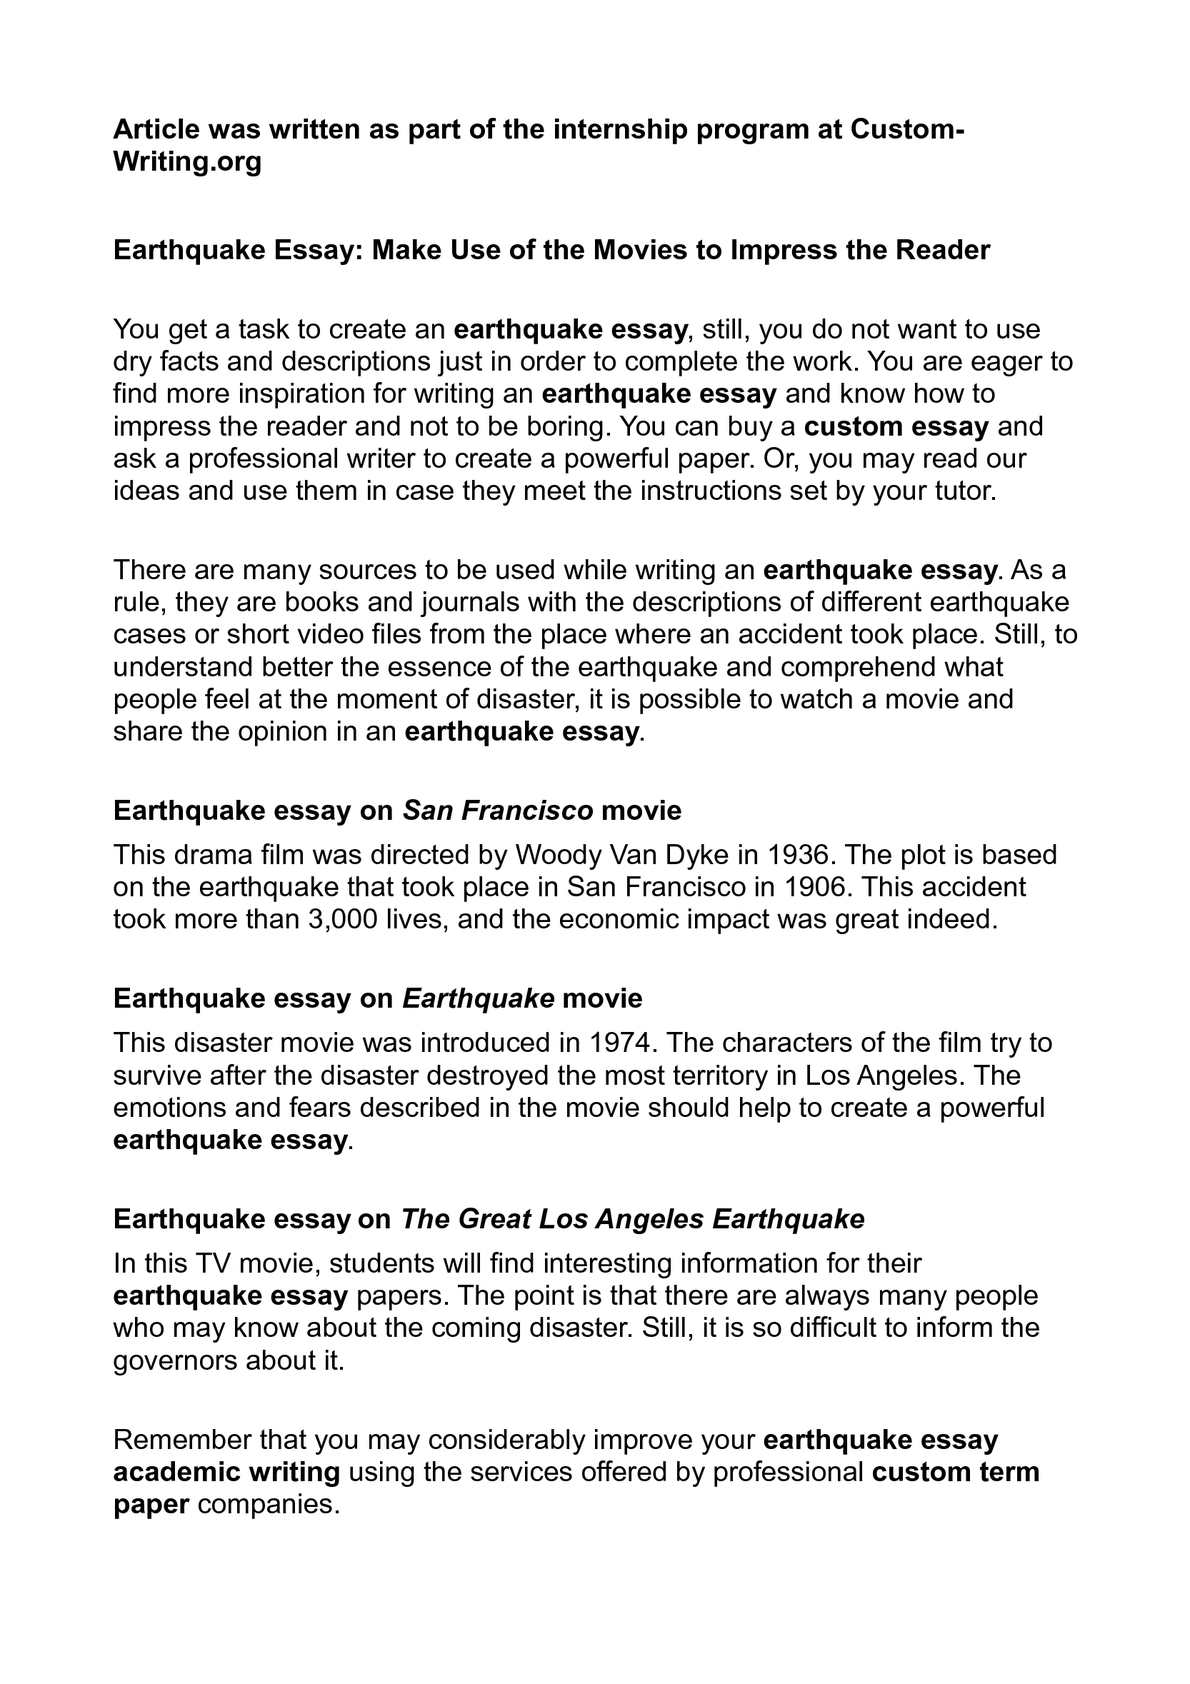 earthquake essay make use of the movies to impress the  earthquake essay make use of the movies to impress the reader